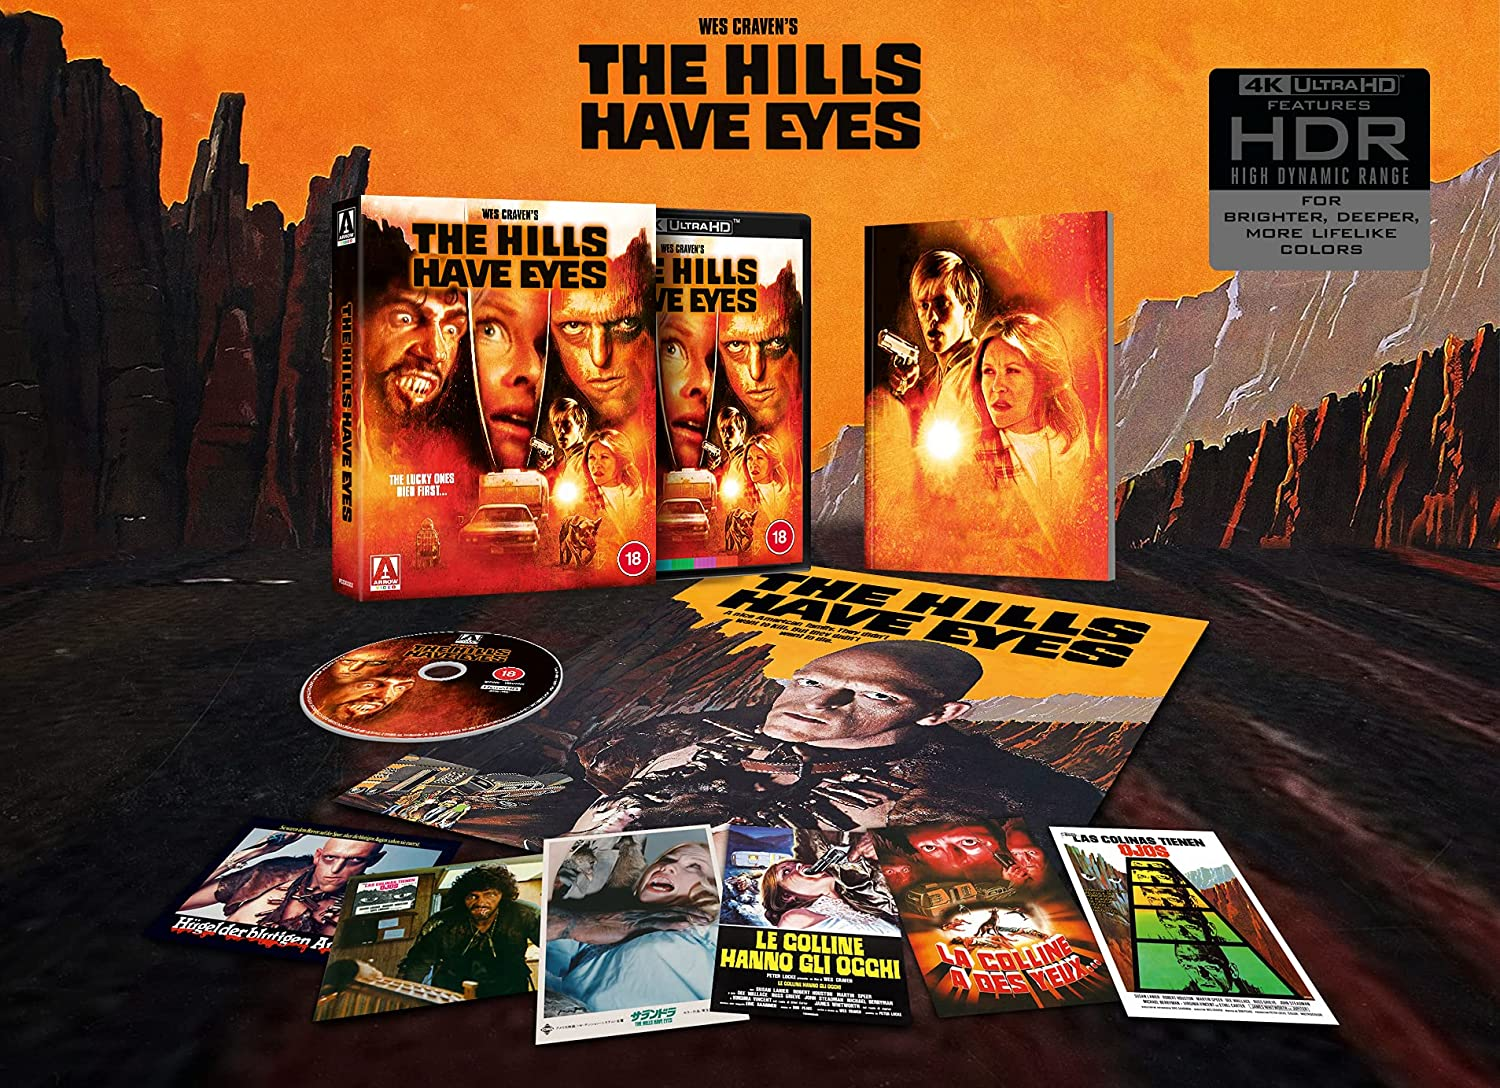 The Hills Have Eyes Limited Edition 4K Contents